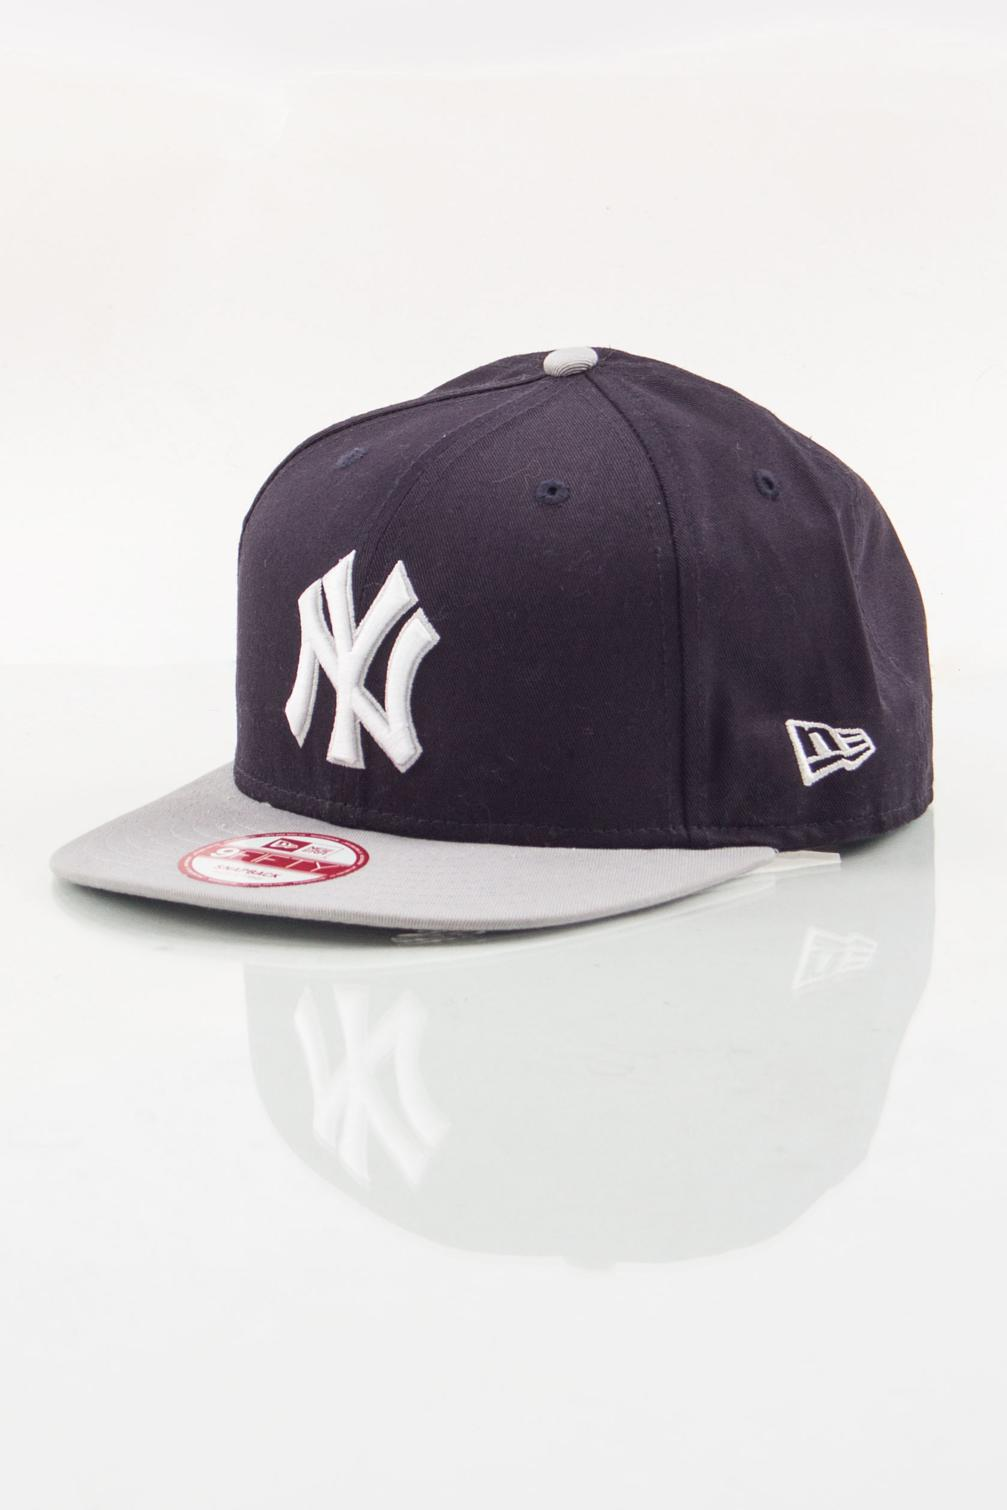 NEW ERA SNAPBACK NY BLACK-GREY